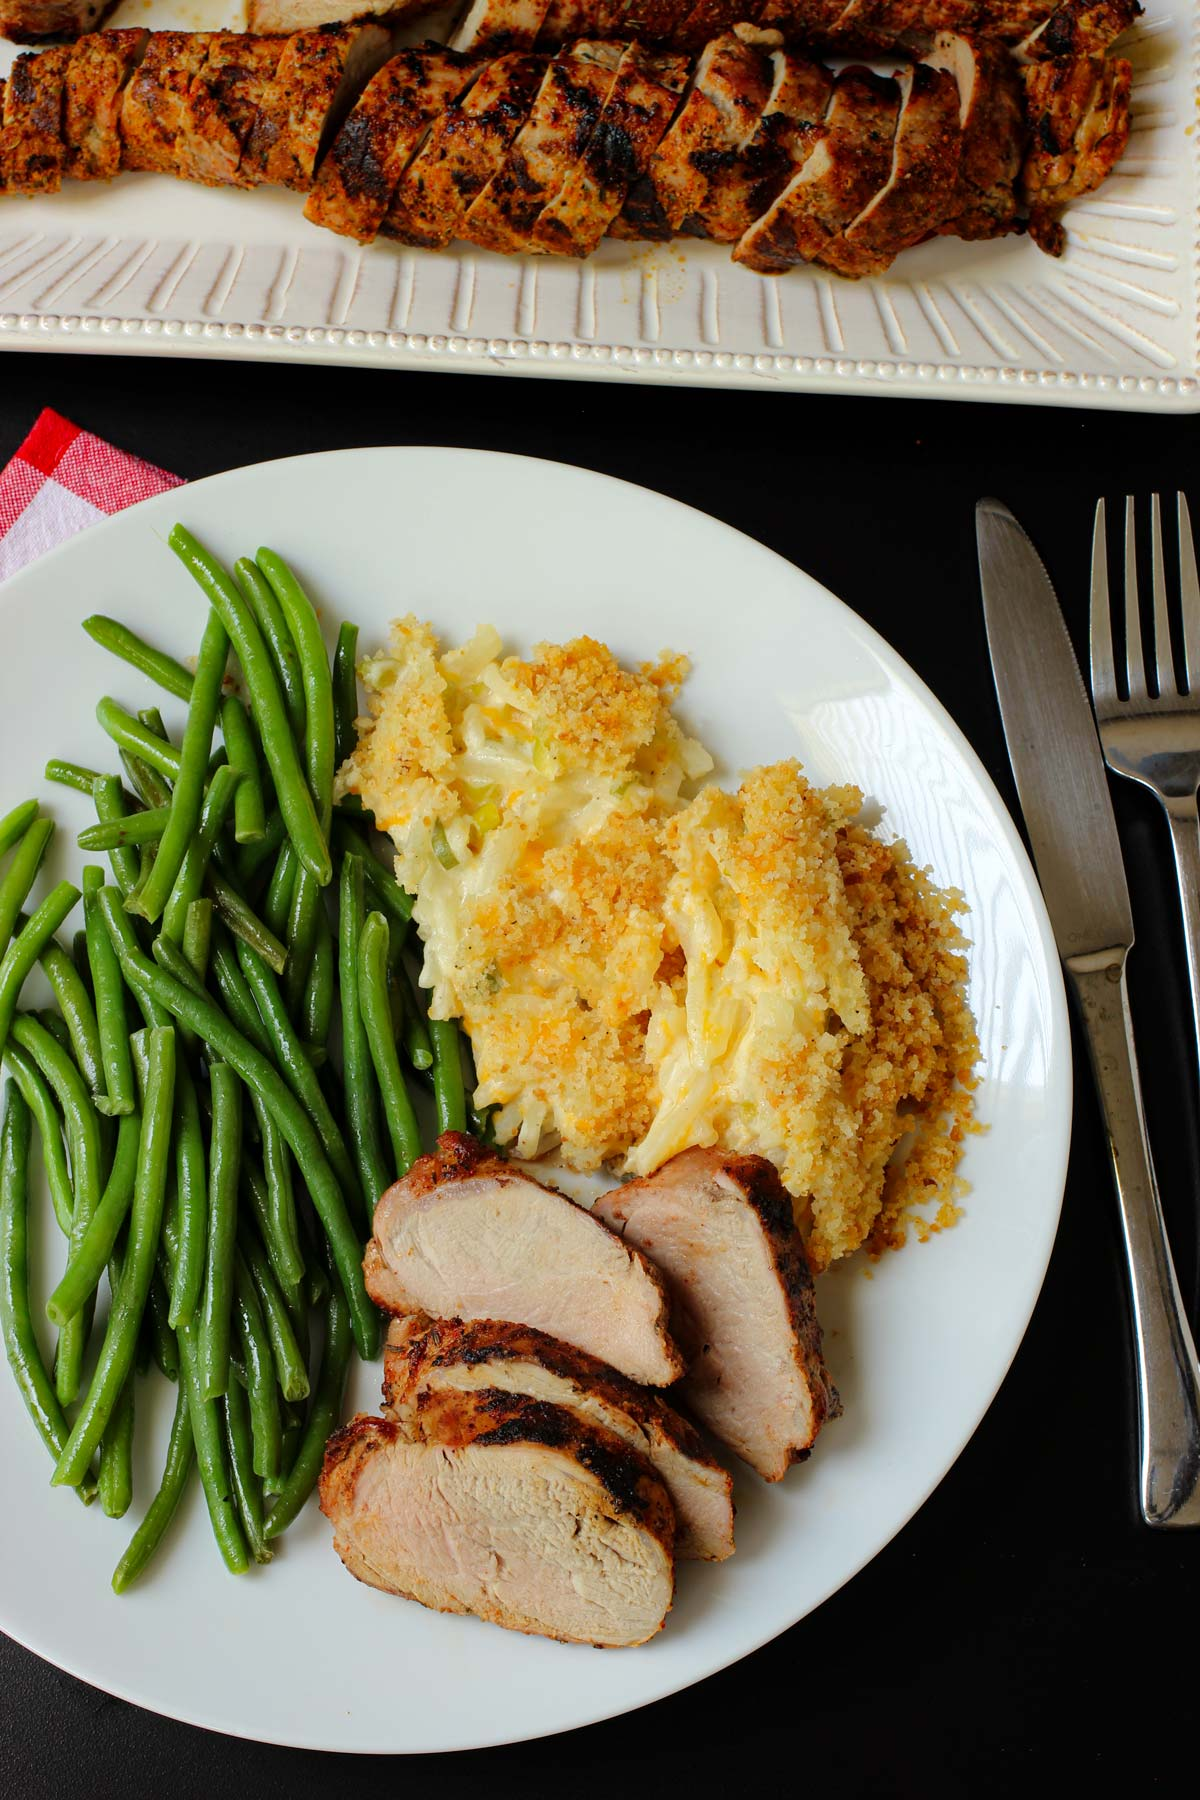 white dinner plate with green beans, hash brown casserole, and grilled pork tenderloin.